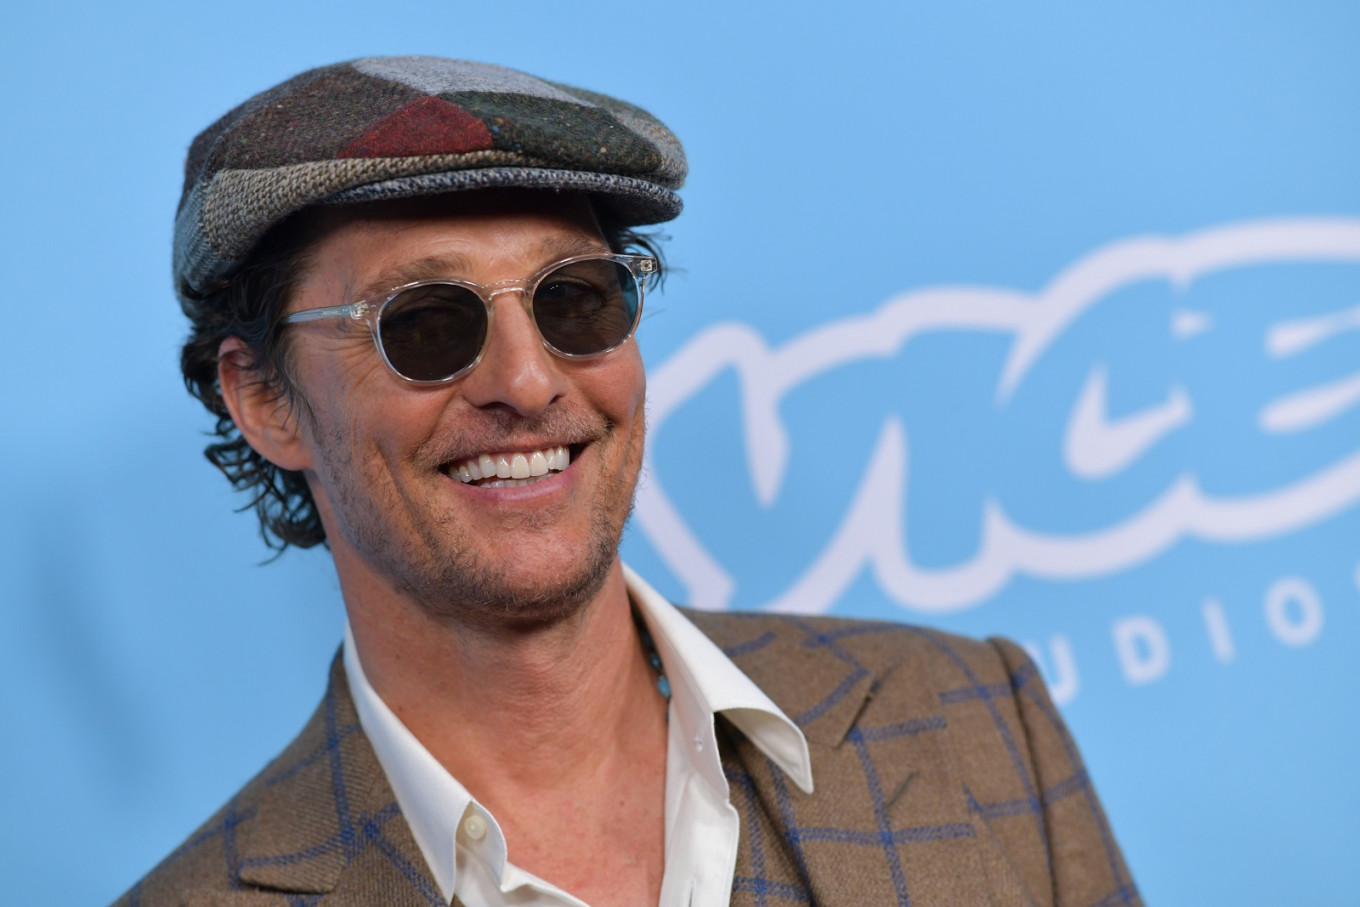 Matthew McConaughey toys with possible Texas governor run